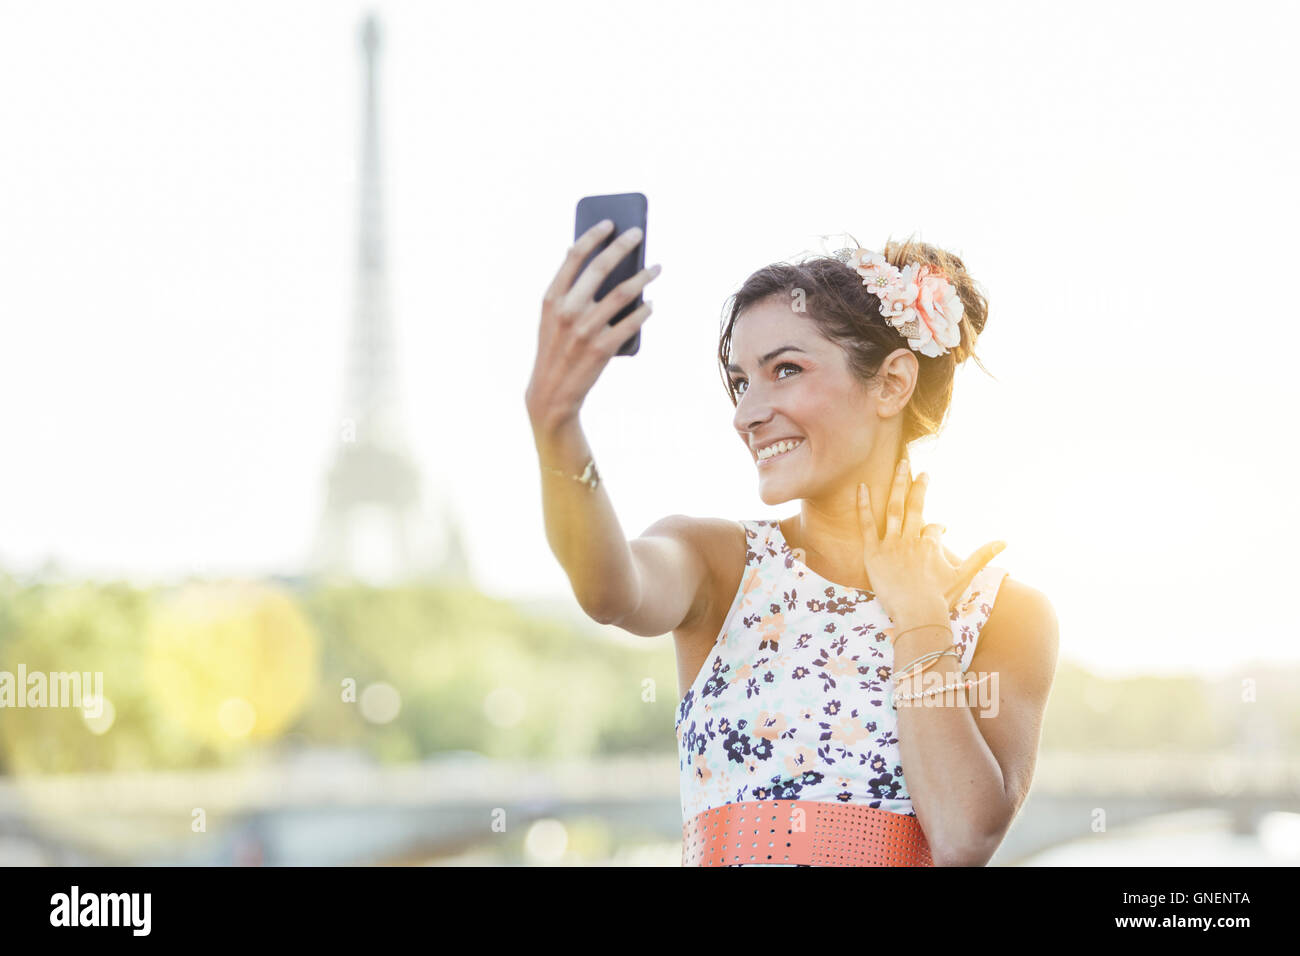 Paris, Woman doing a selfie with Eiffel Tower in Background - Stock Image